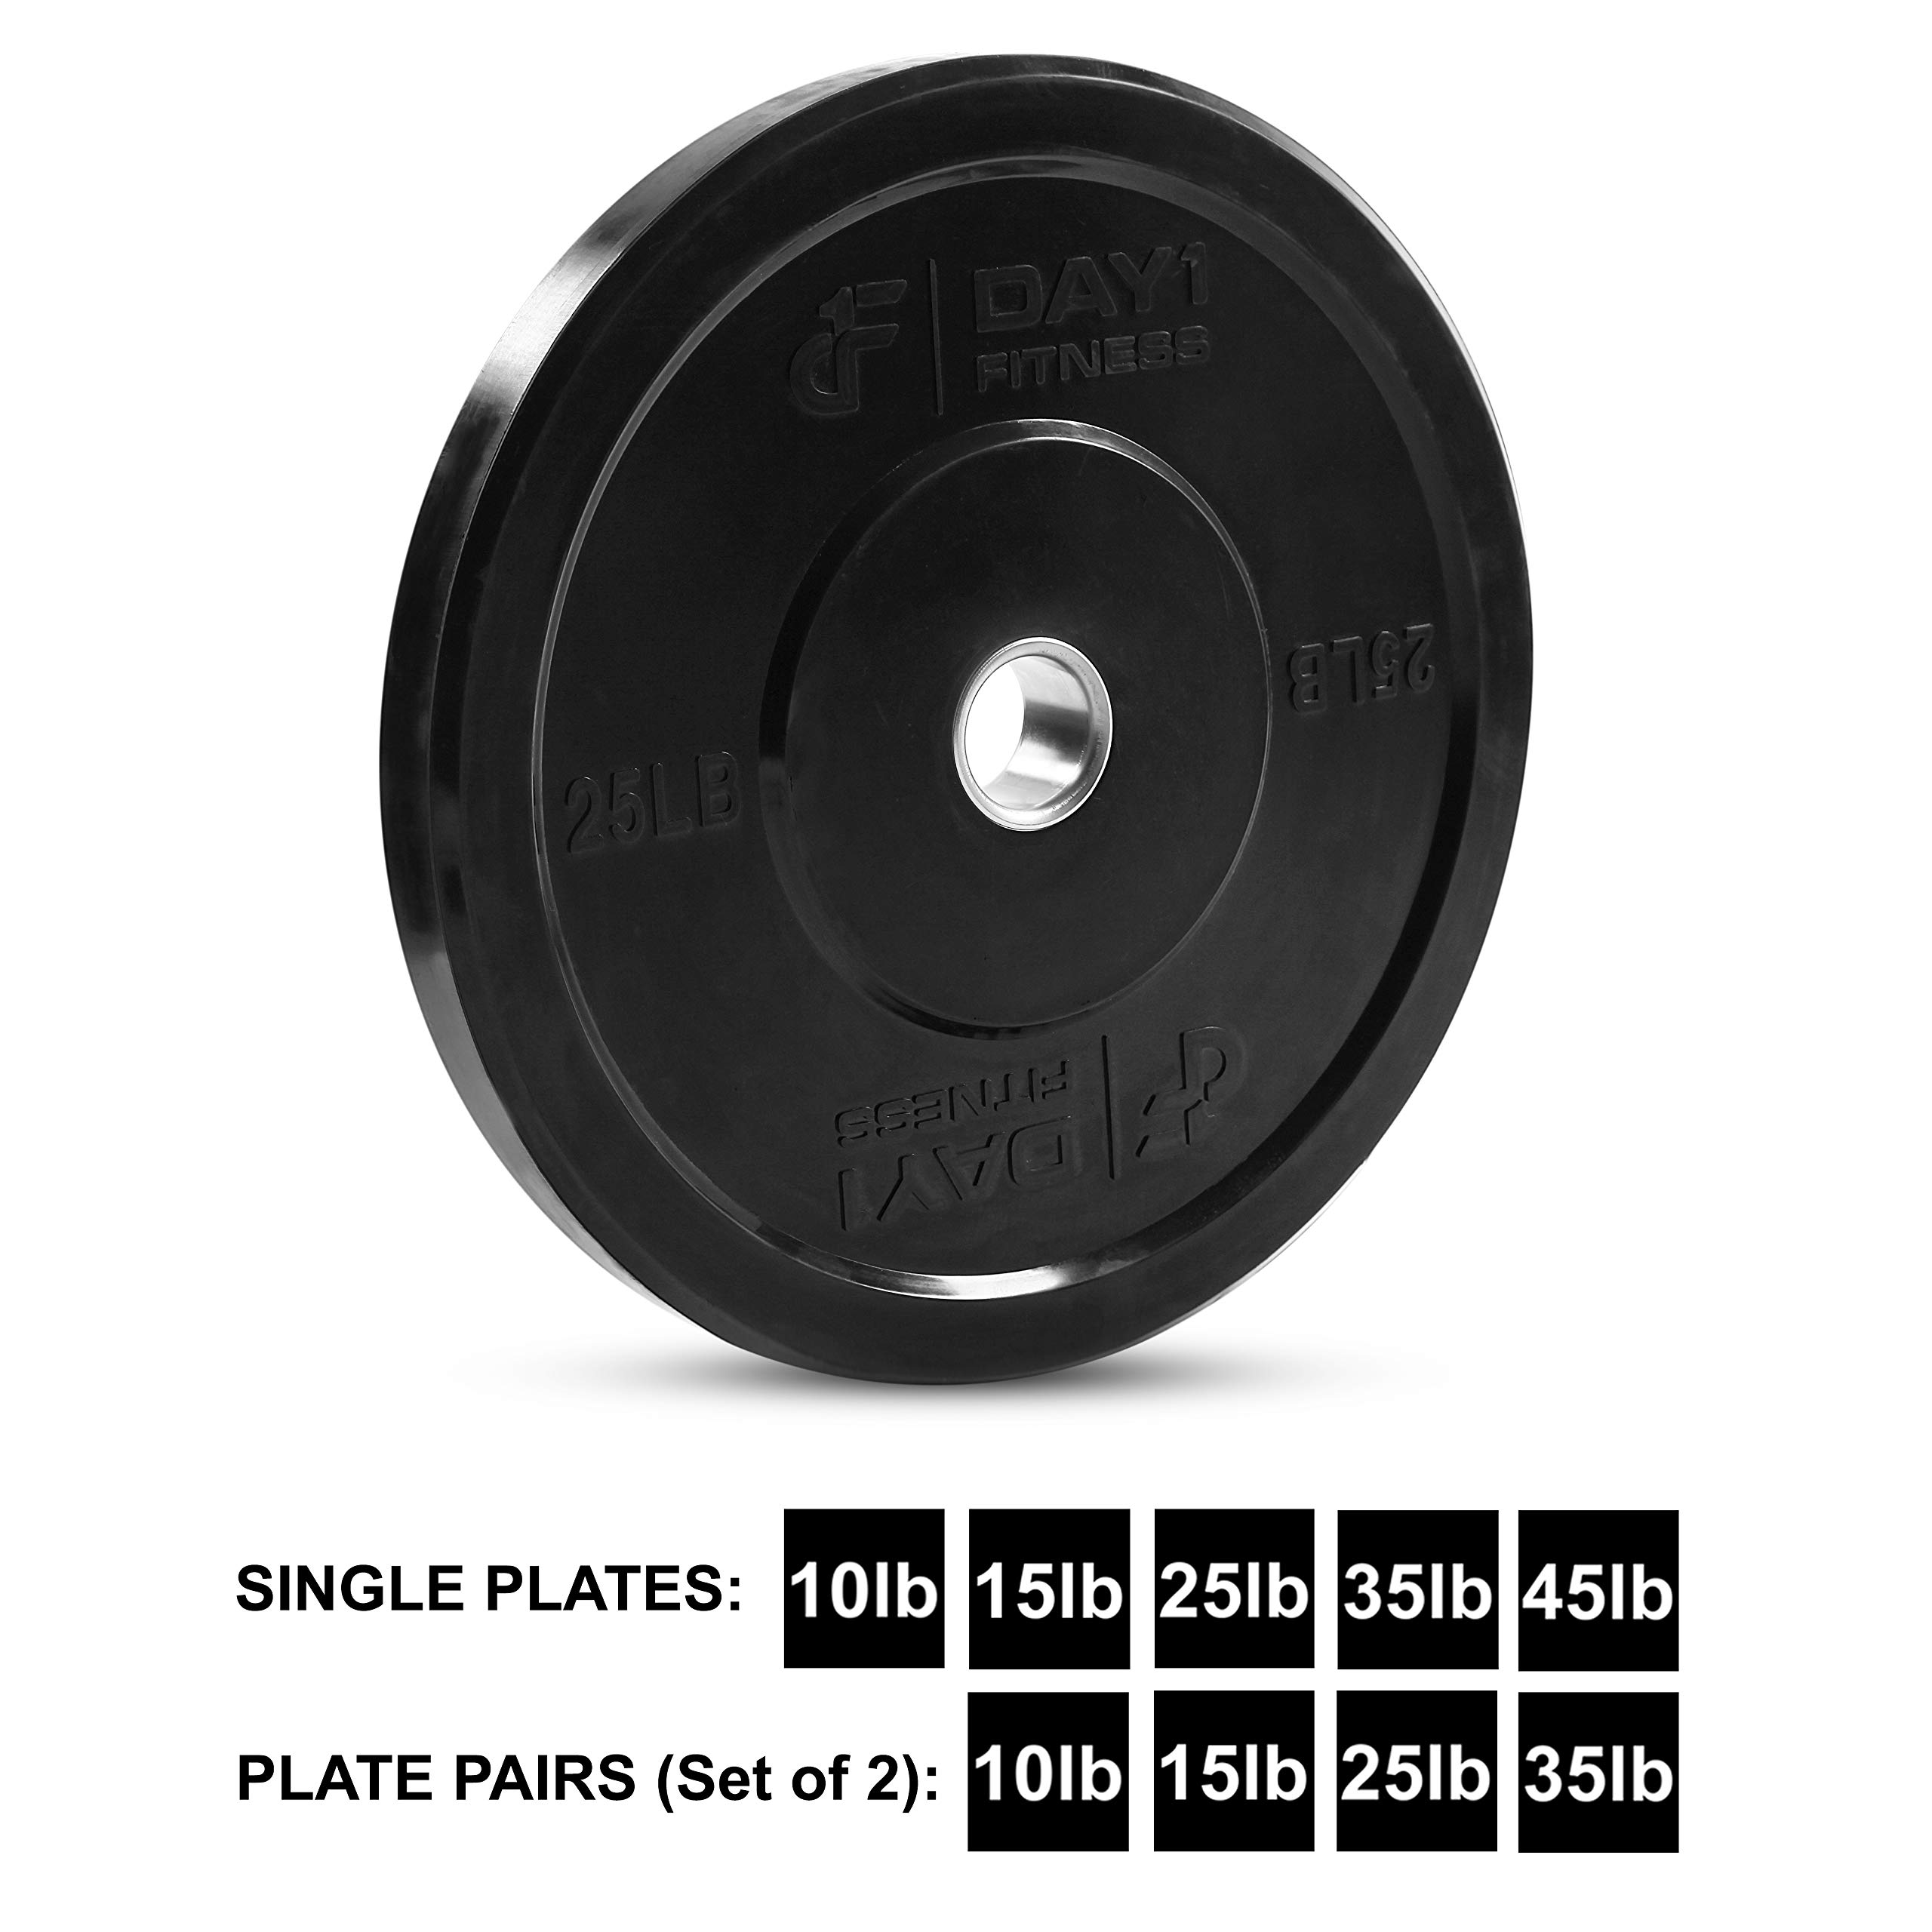 "Day 1 Fitness Olympic Bumper Weighted Plate 2"" for Barbells, Bars – 25 lb Single Plate - Shock-Absorbing, Minimal Bounce Steel Weights with Bumpers for Lifting, Strength Training, and Working Out by Day 1 Fitness (Image #1)"